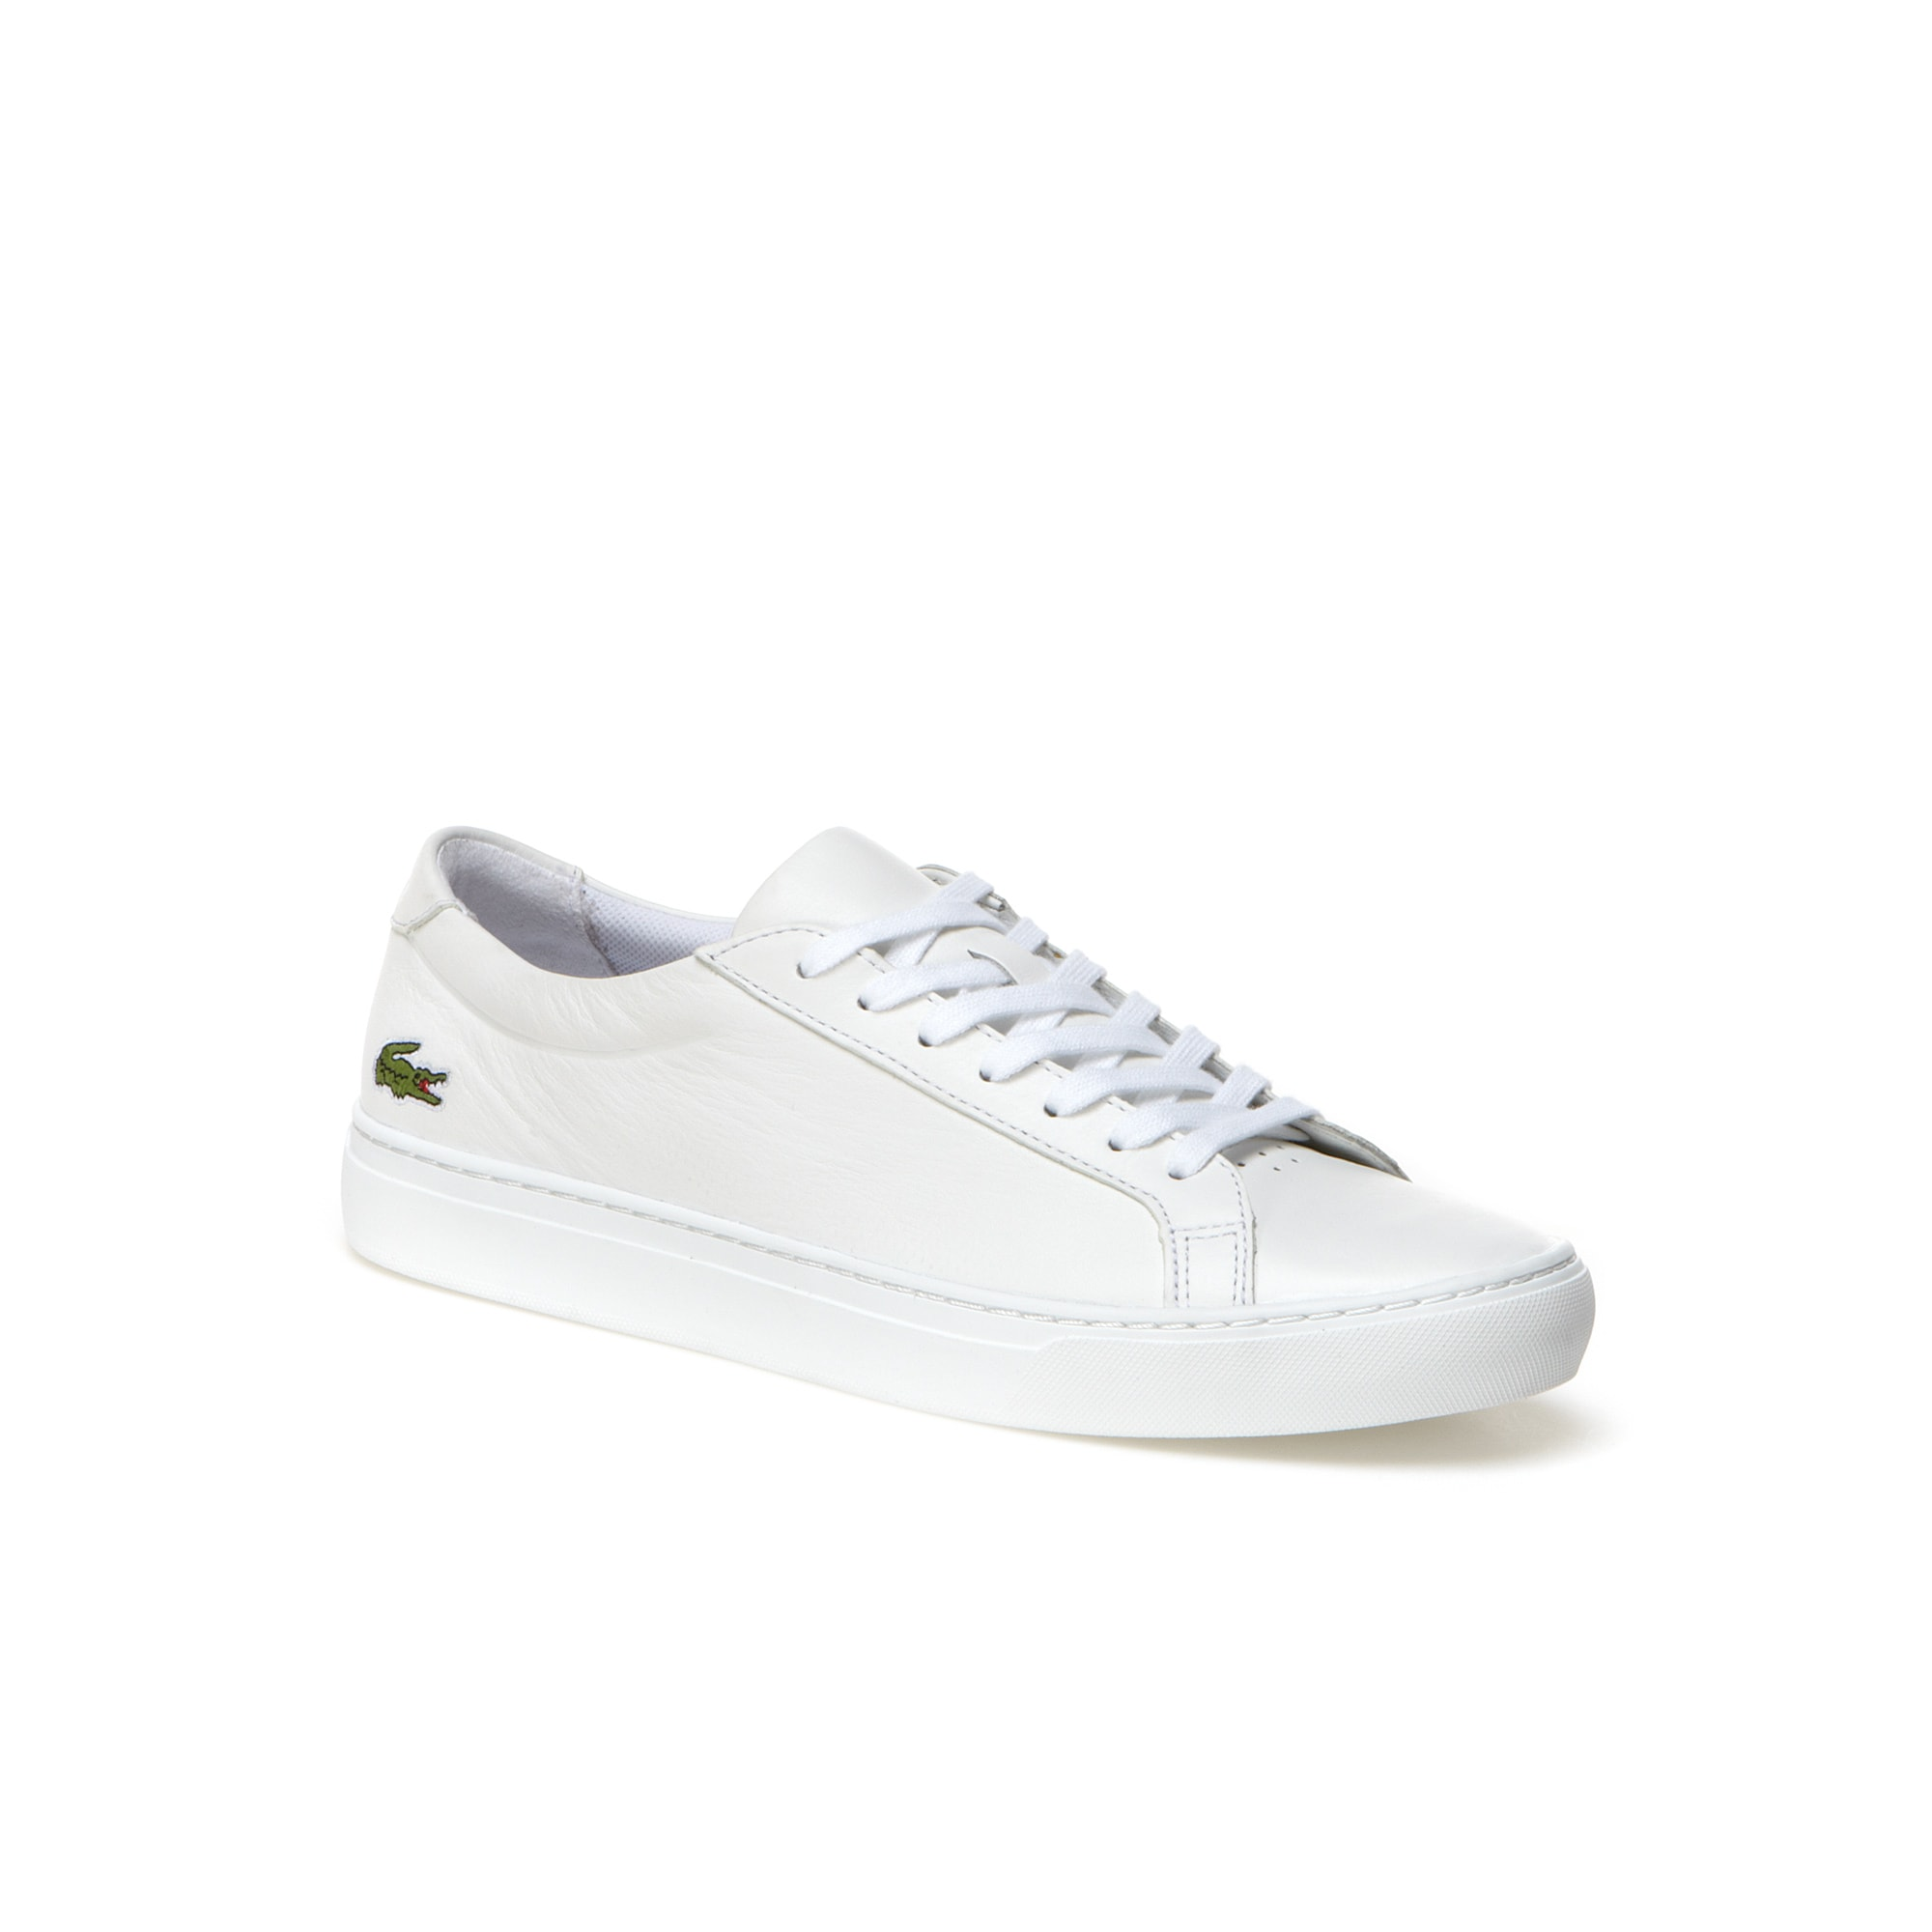 7d07b77b743853 Men s L.12.12 Nappa Leather Trainers